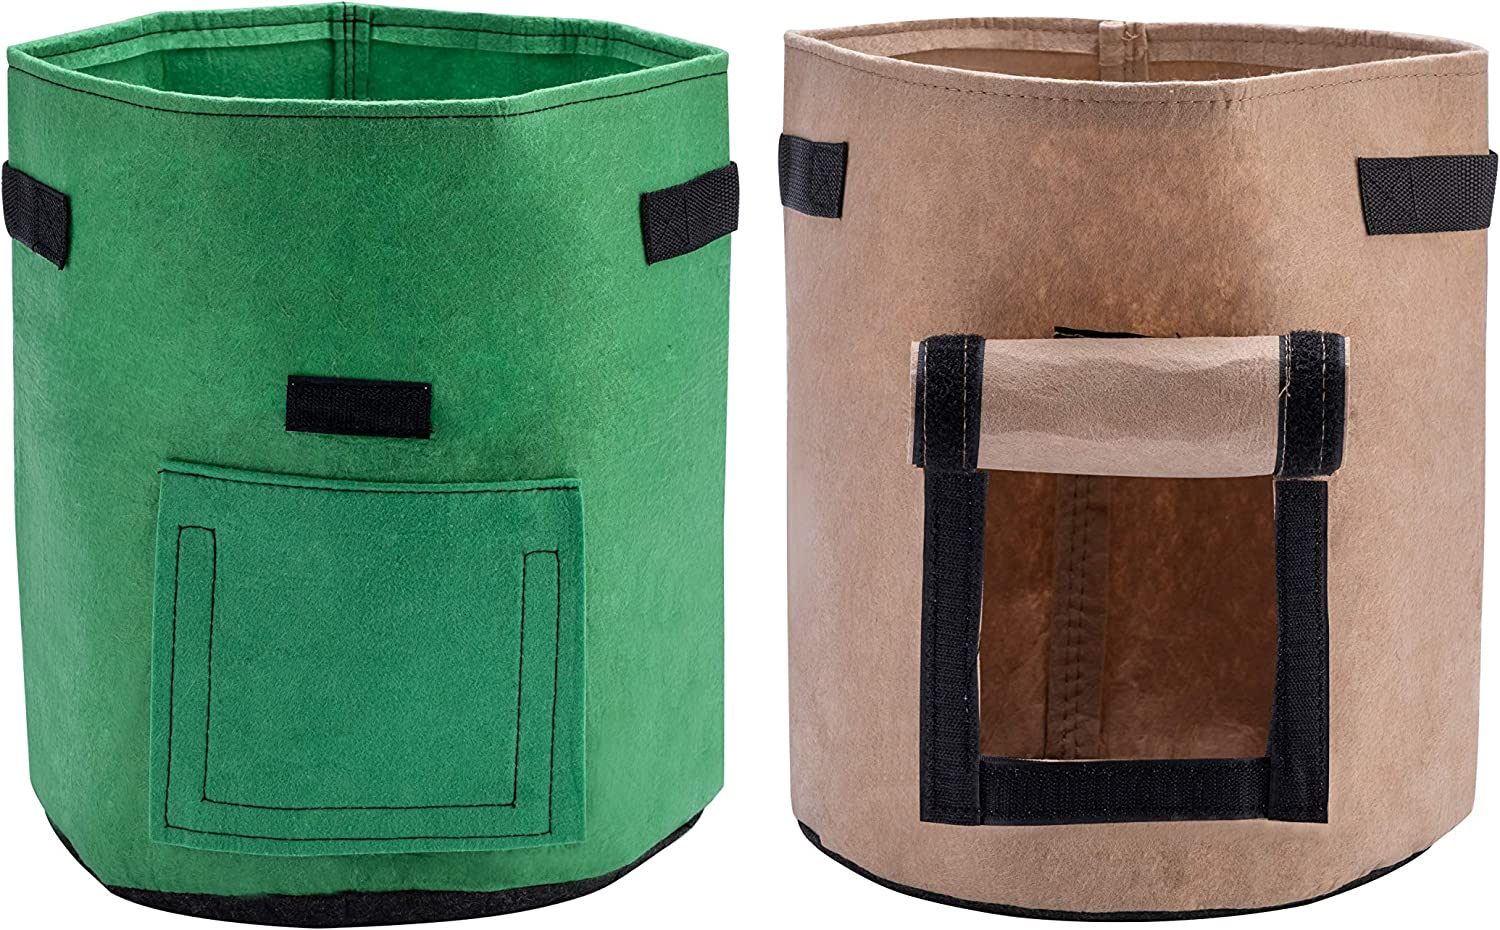 X L MAGNET Potato Grow Bags 2-Pack 7 Gallon Planter Pots Garden Bags to Grow Vegetables with Aeration Fabric Flap Handles and Window for Harvesting Fruit Flower Potato Carrot Green Brown